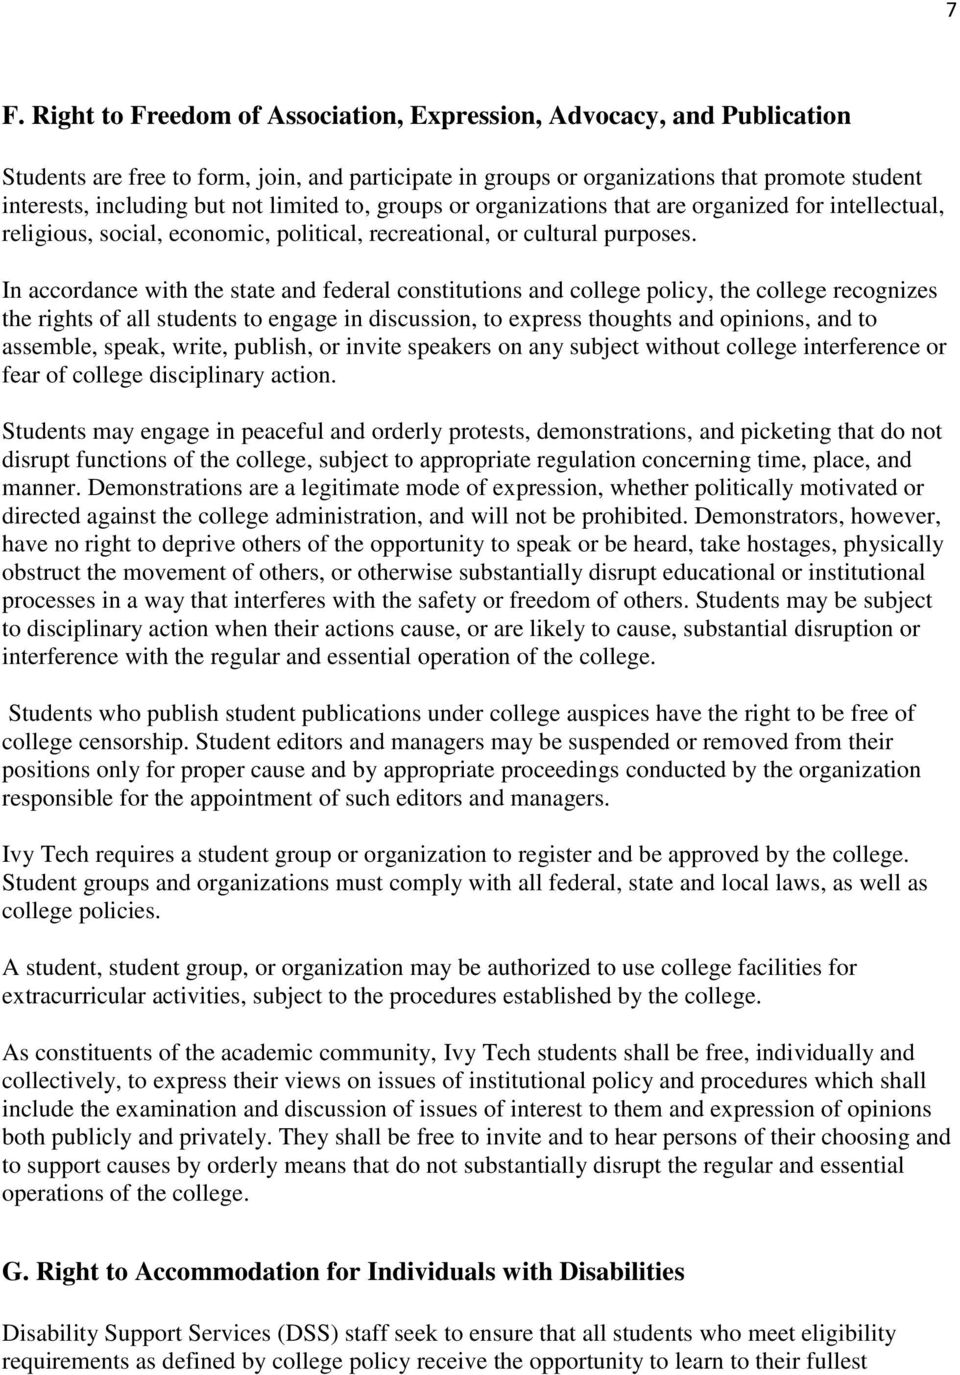 In accordance with the state and federal constitutions and college policy, the college recognizes the rights of all students to engage in discussion, to express thoughts and opinions, and to